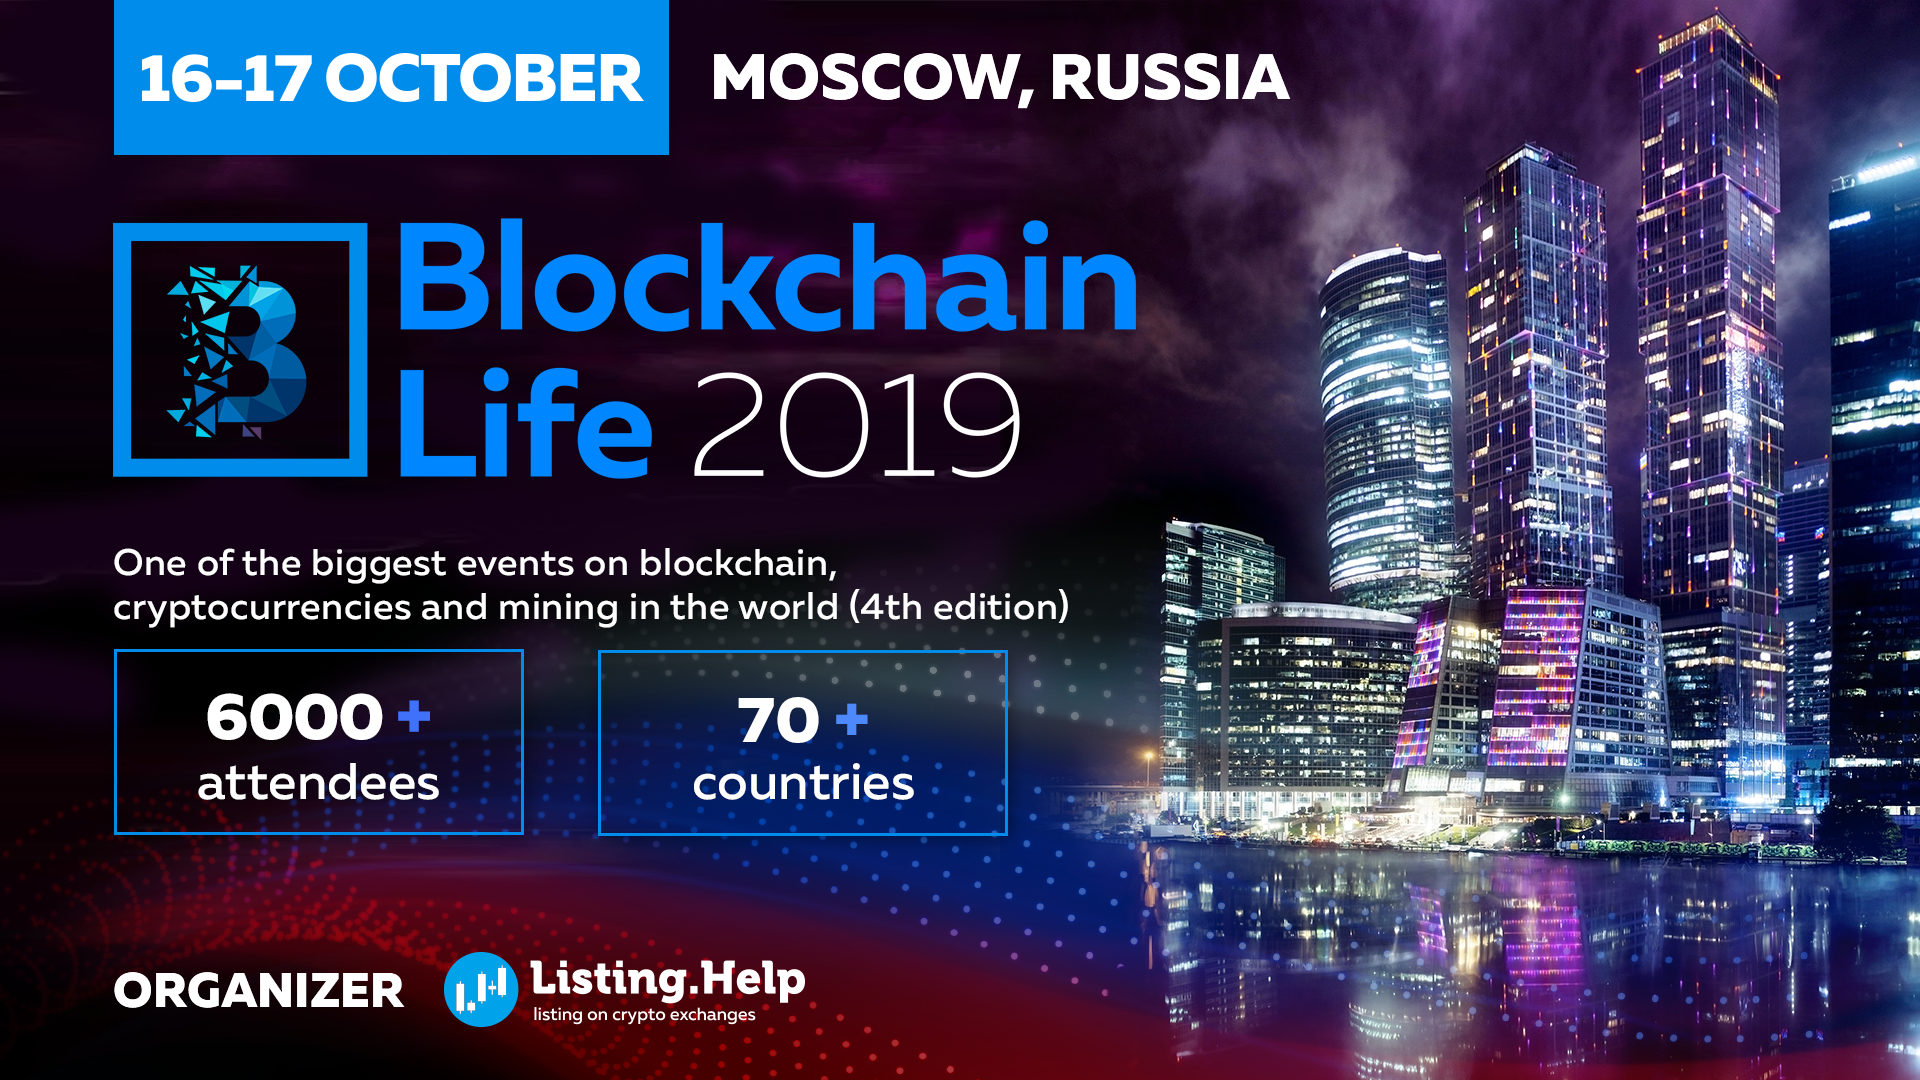 crypto companies on Blockchain Life event